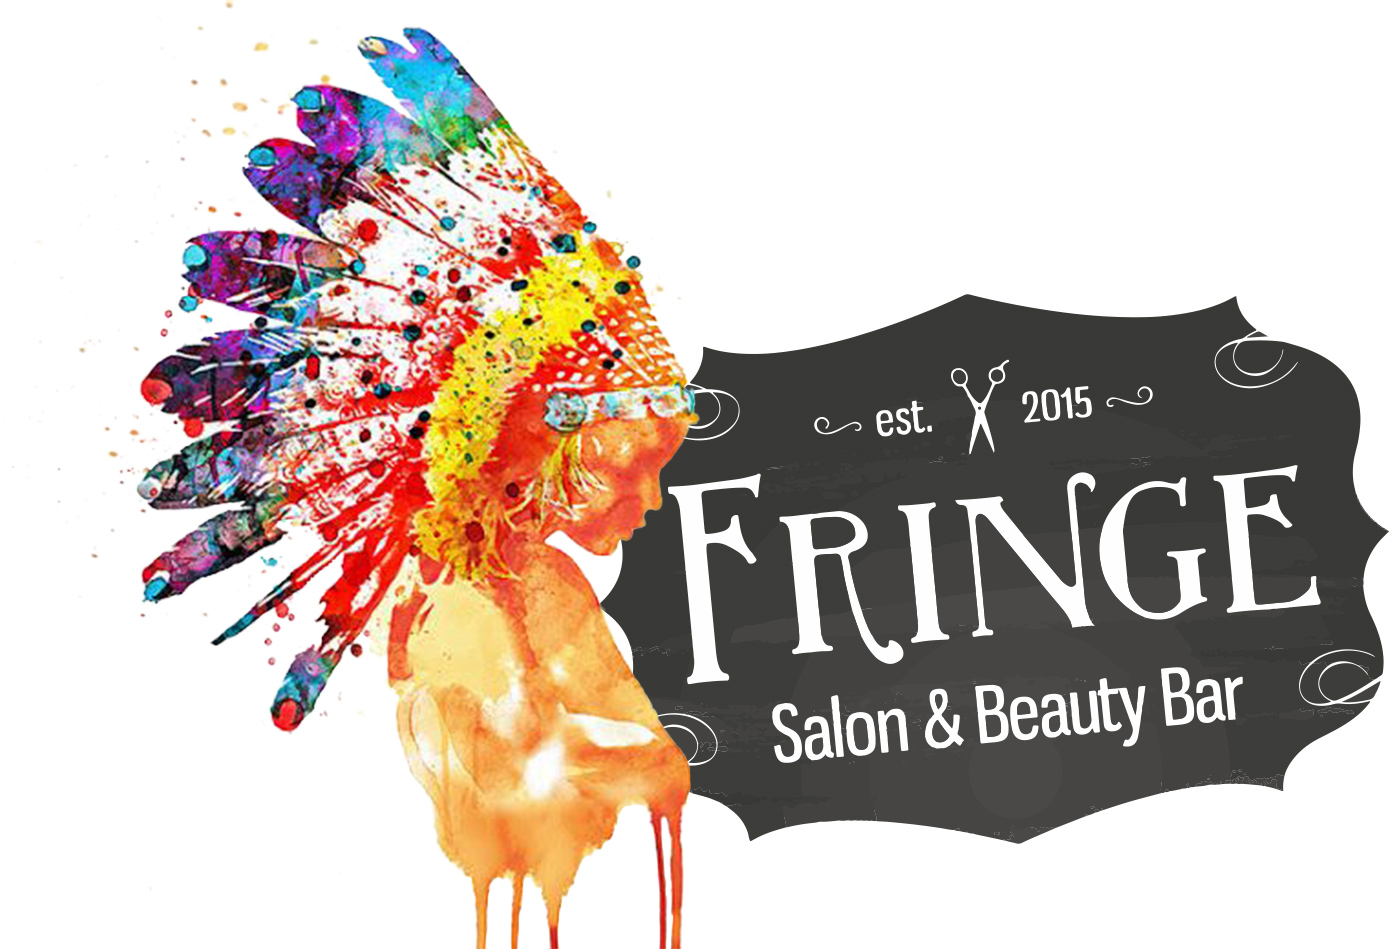 Fringe Salon & Beauty Bar